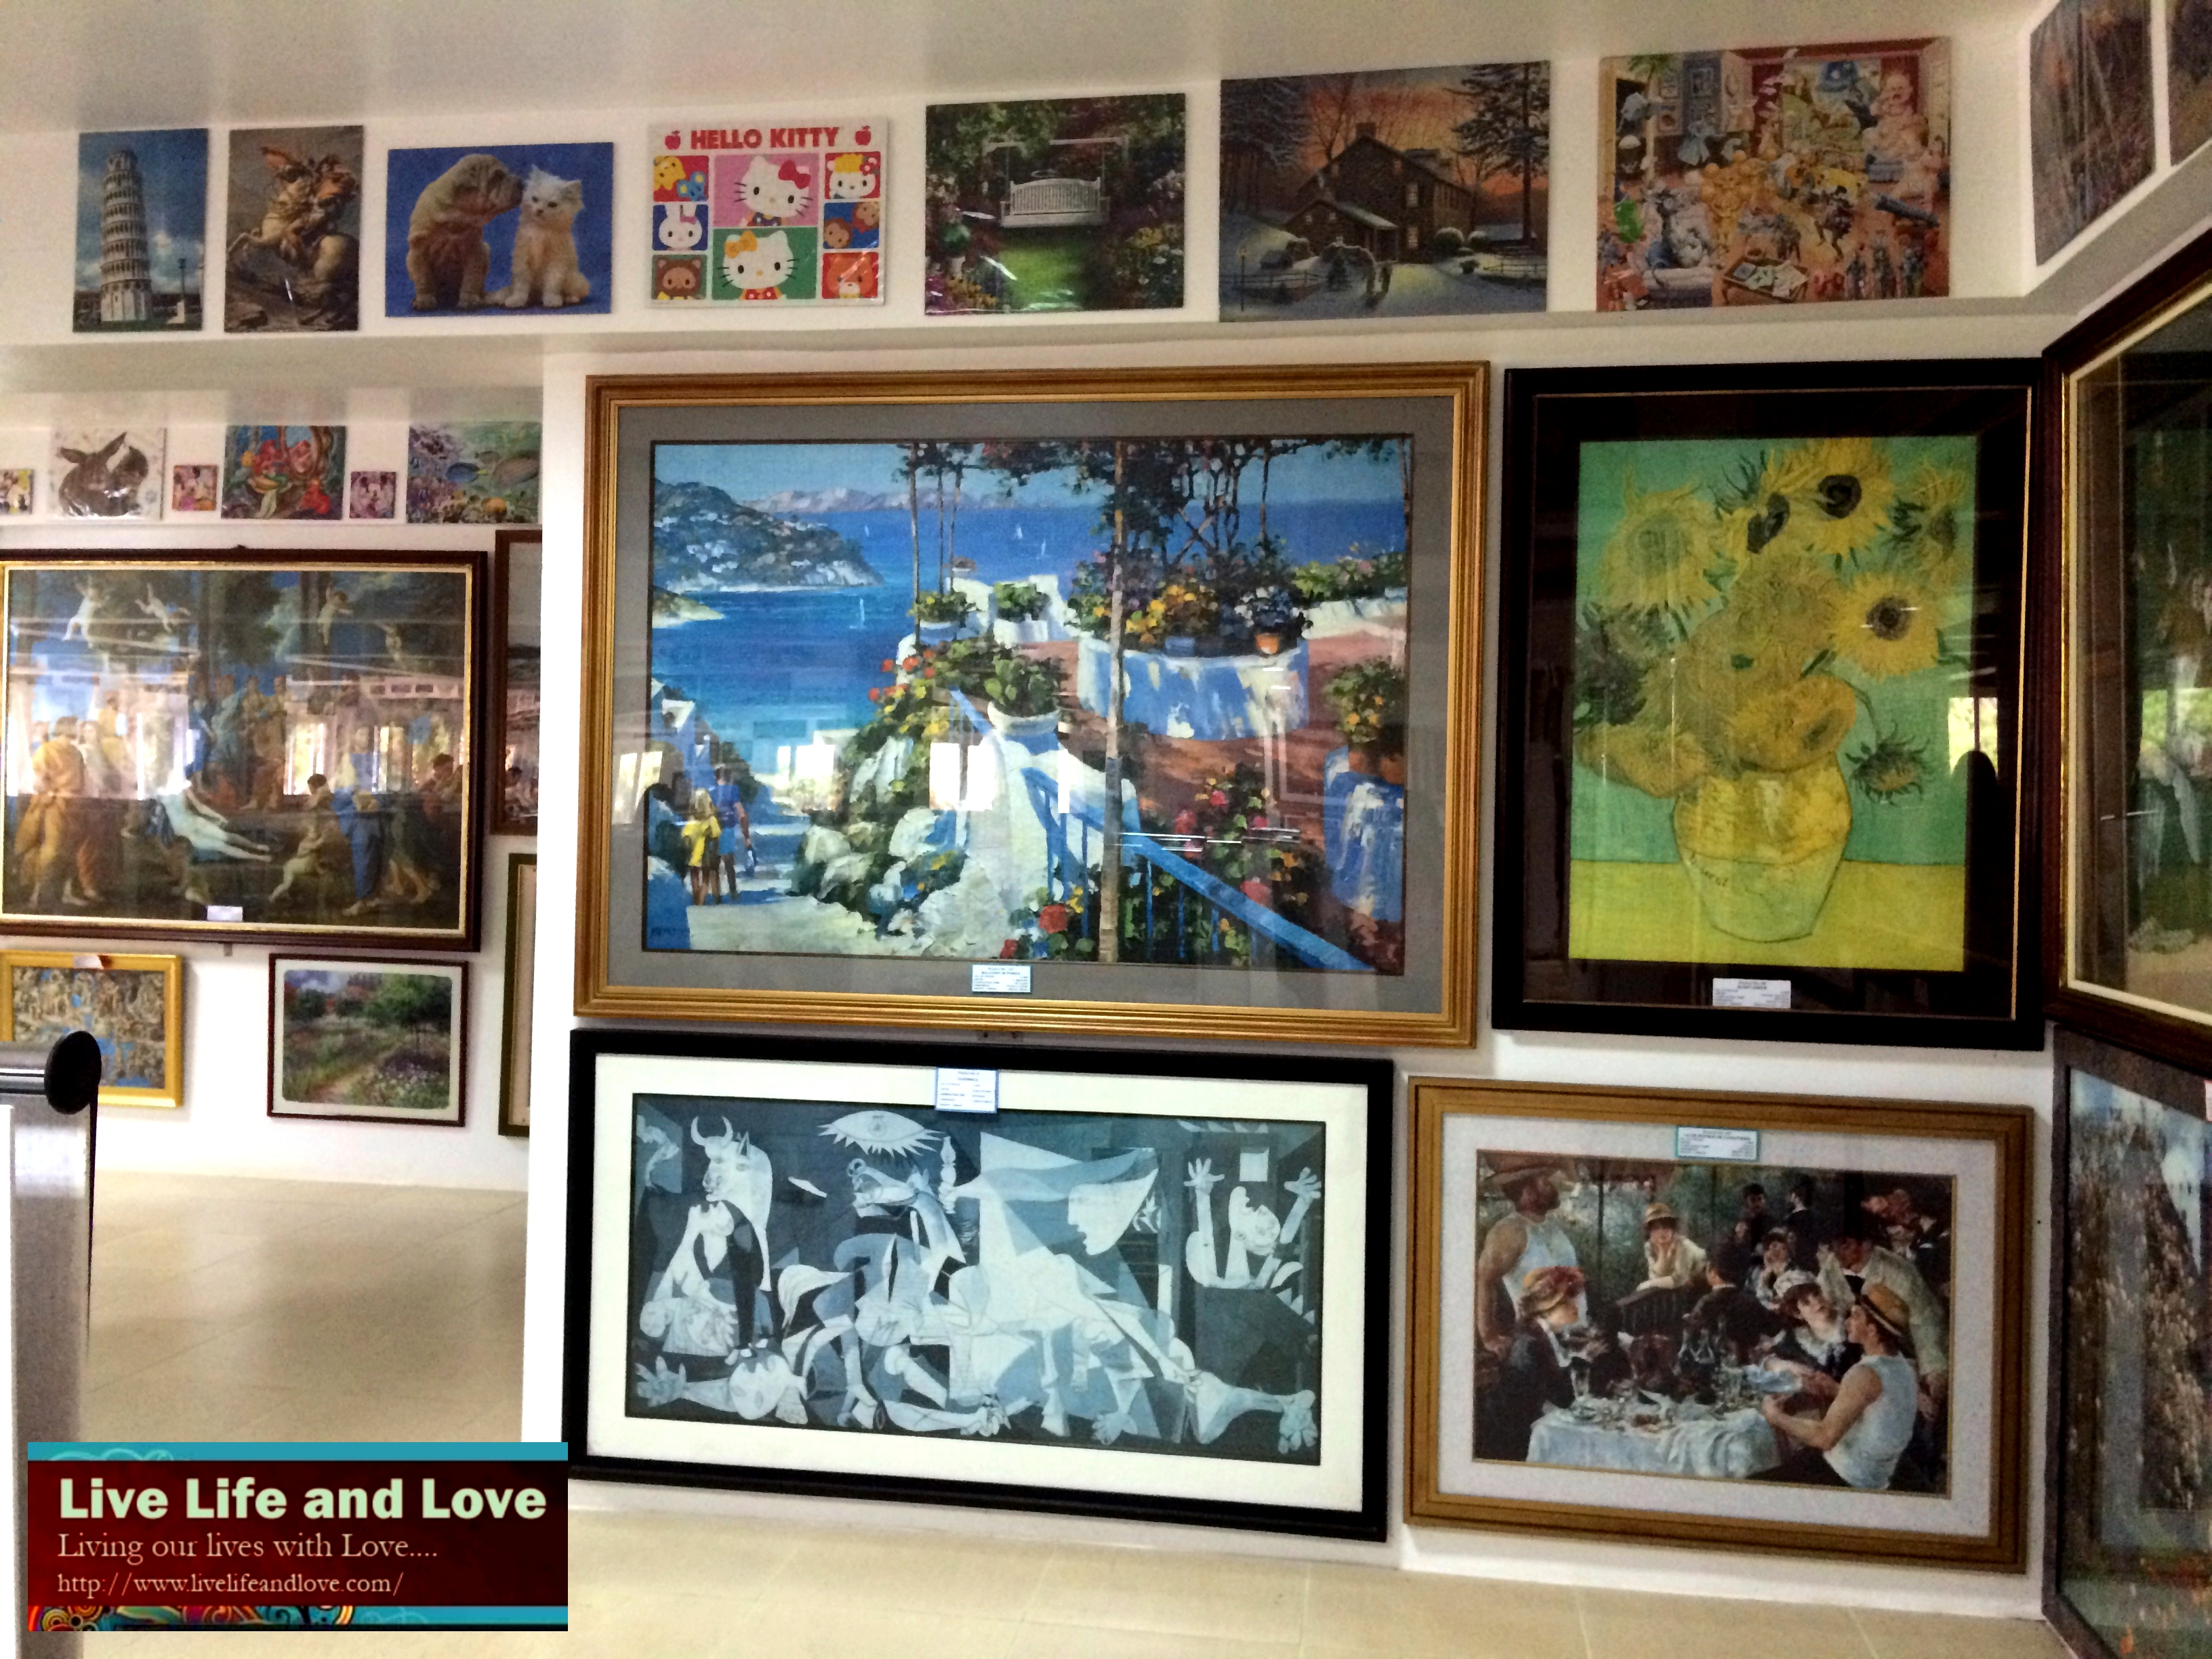 Largest collection of Jigsaw puzzles | Live Life and Love